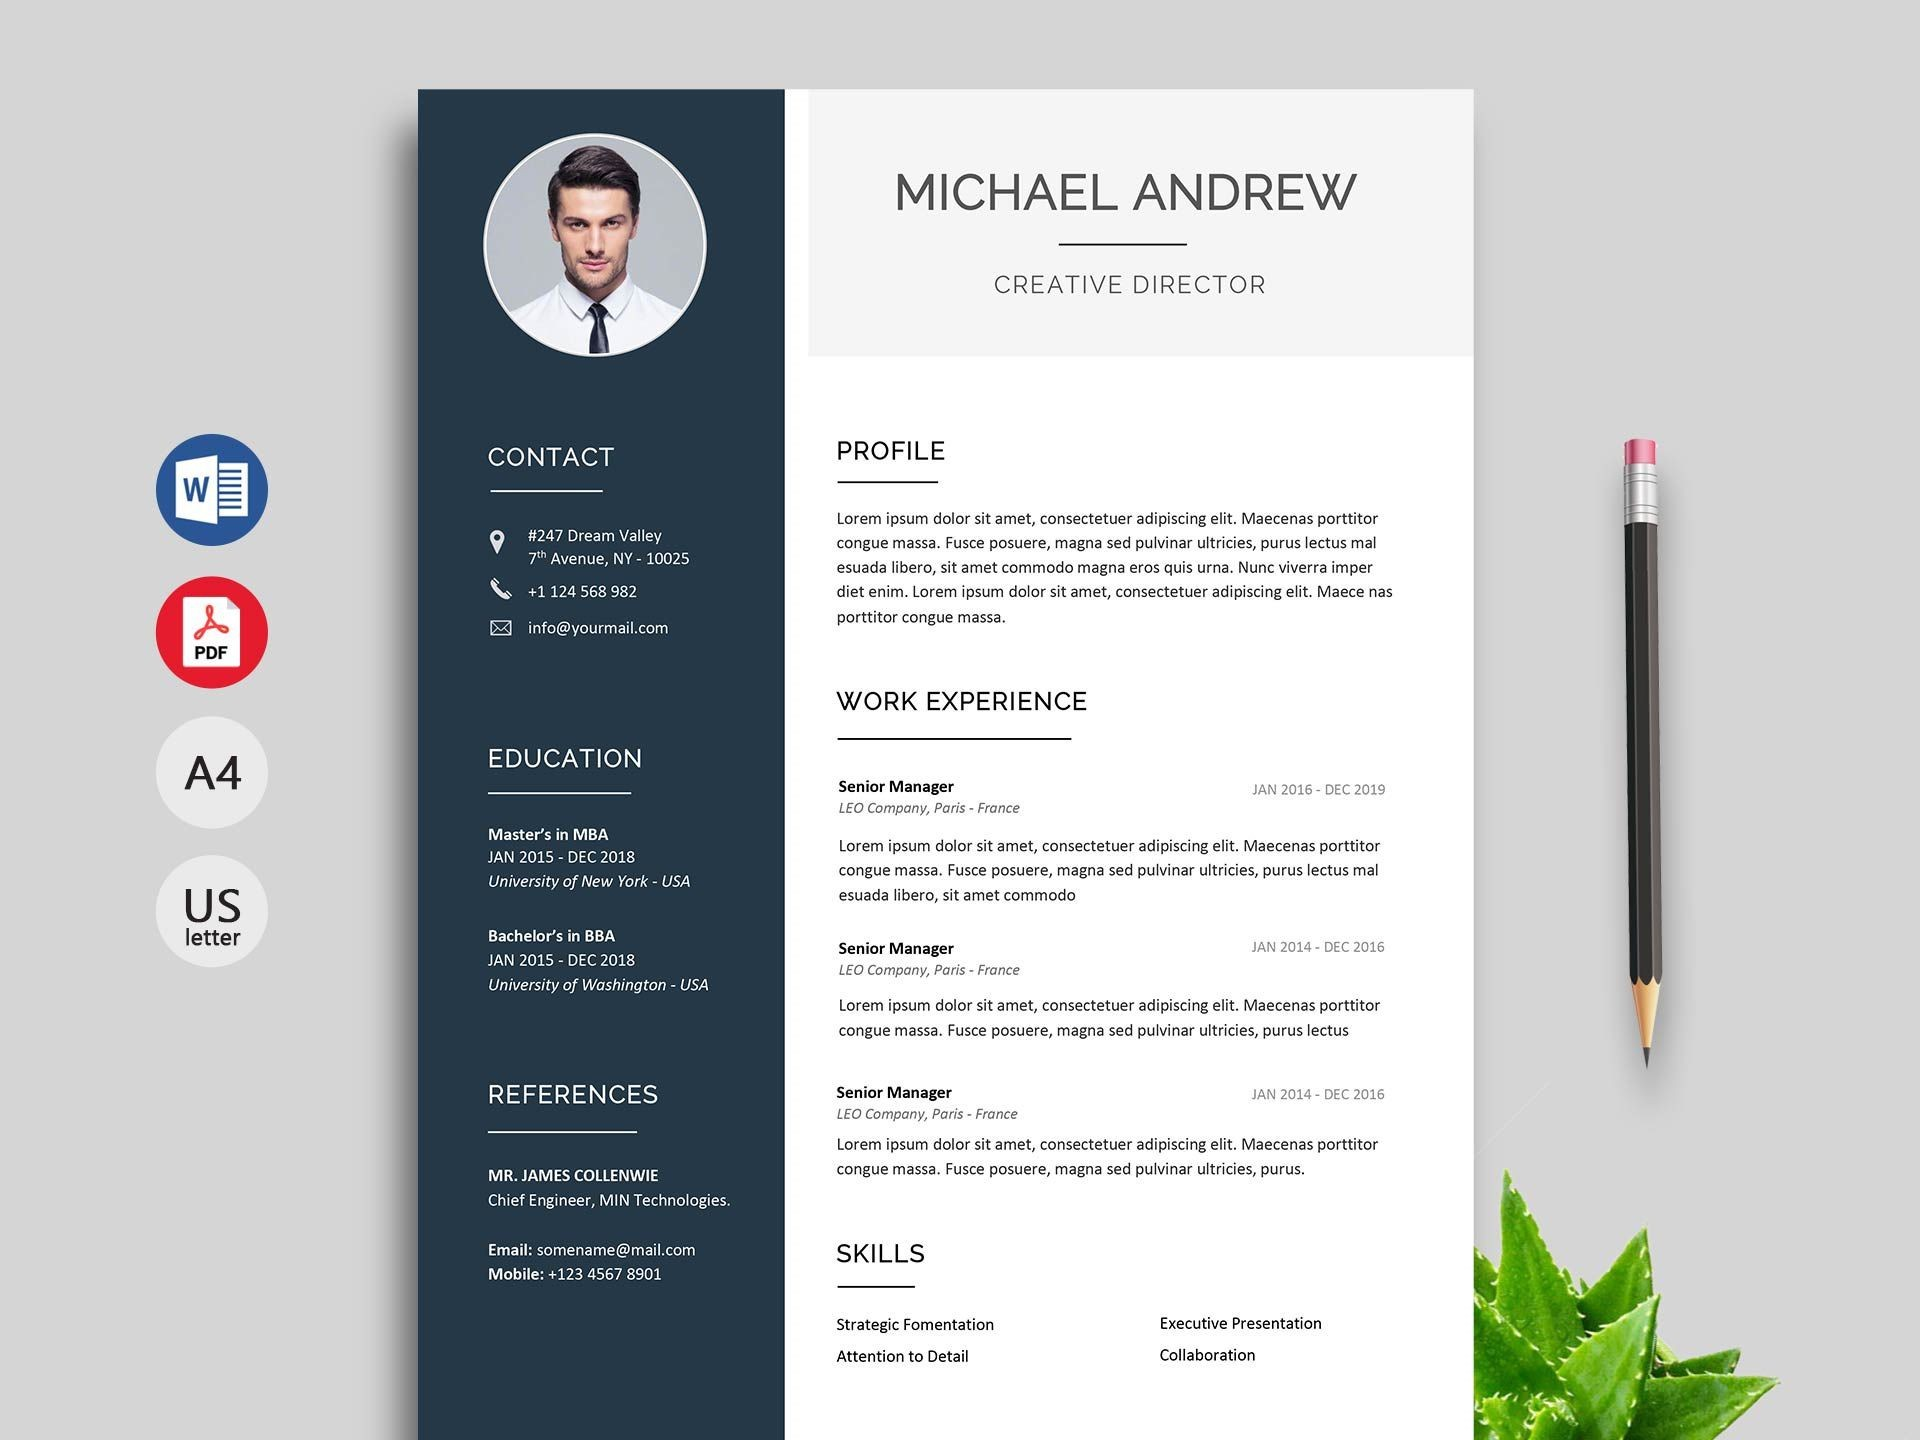 008 Formidable Resume Template Word Free Download 2019 Photo  Cv1920